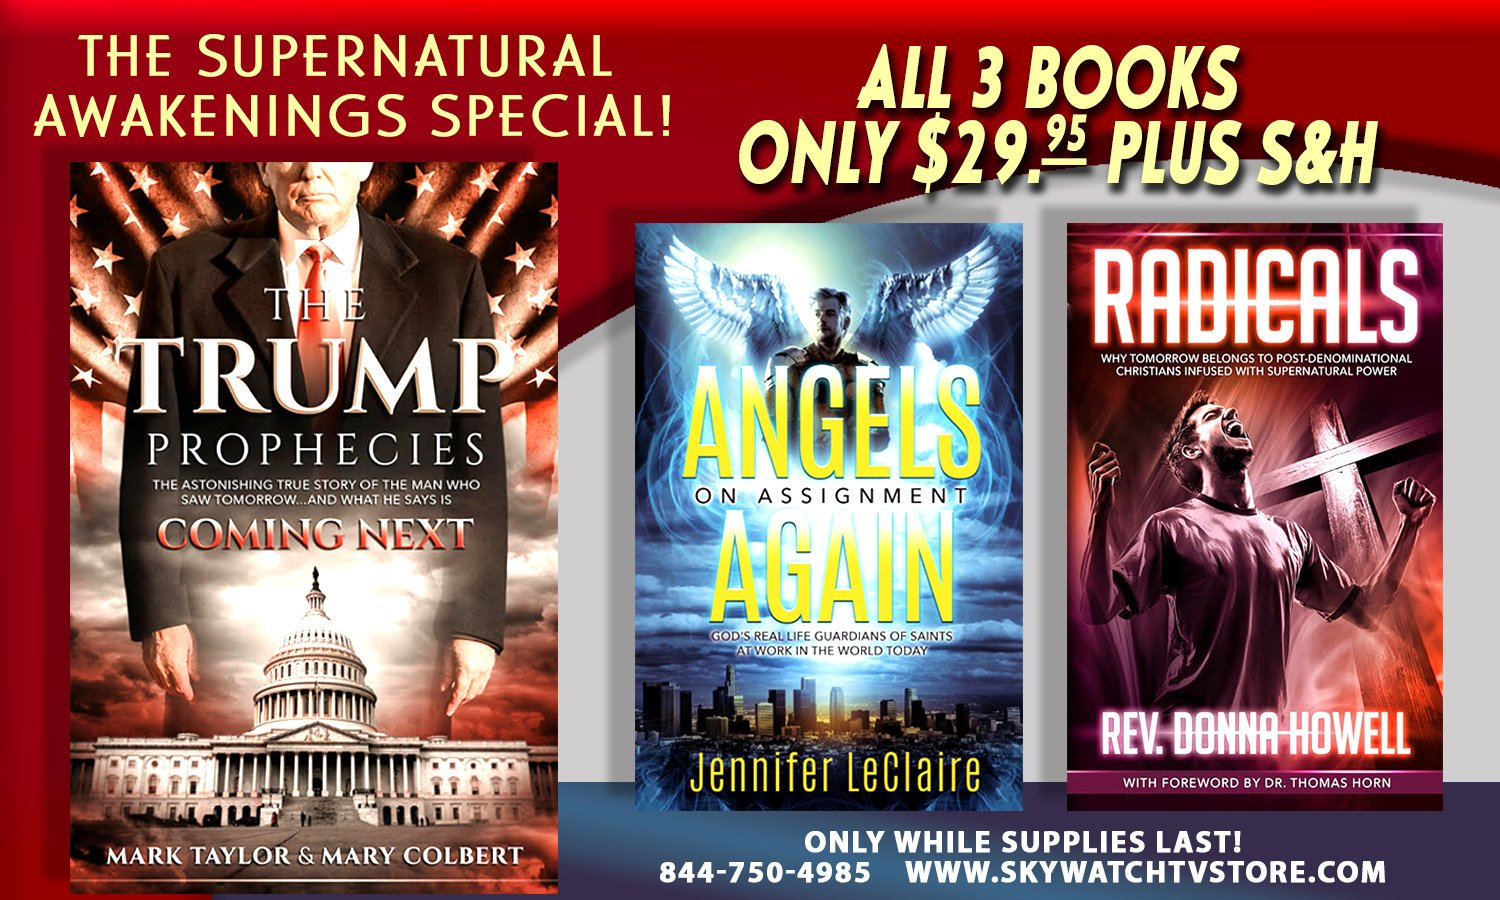 THE WORLD IS NOT READY FOR WHAT THE FIREMAN SAYS IS COMING NEXT! WILL YOU BE!? ORDER THE SUPERNATURAL AWAKENINGS AT A HUGE DISCOUNT AND GET READY FOR STARTLING REVELATIONS!